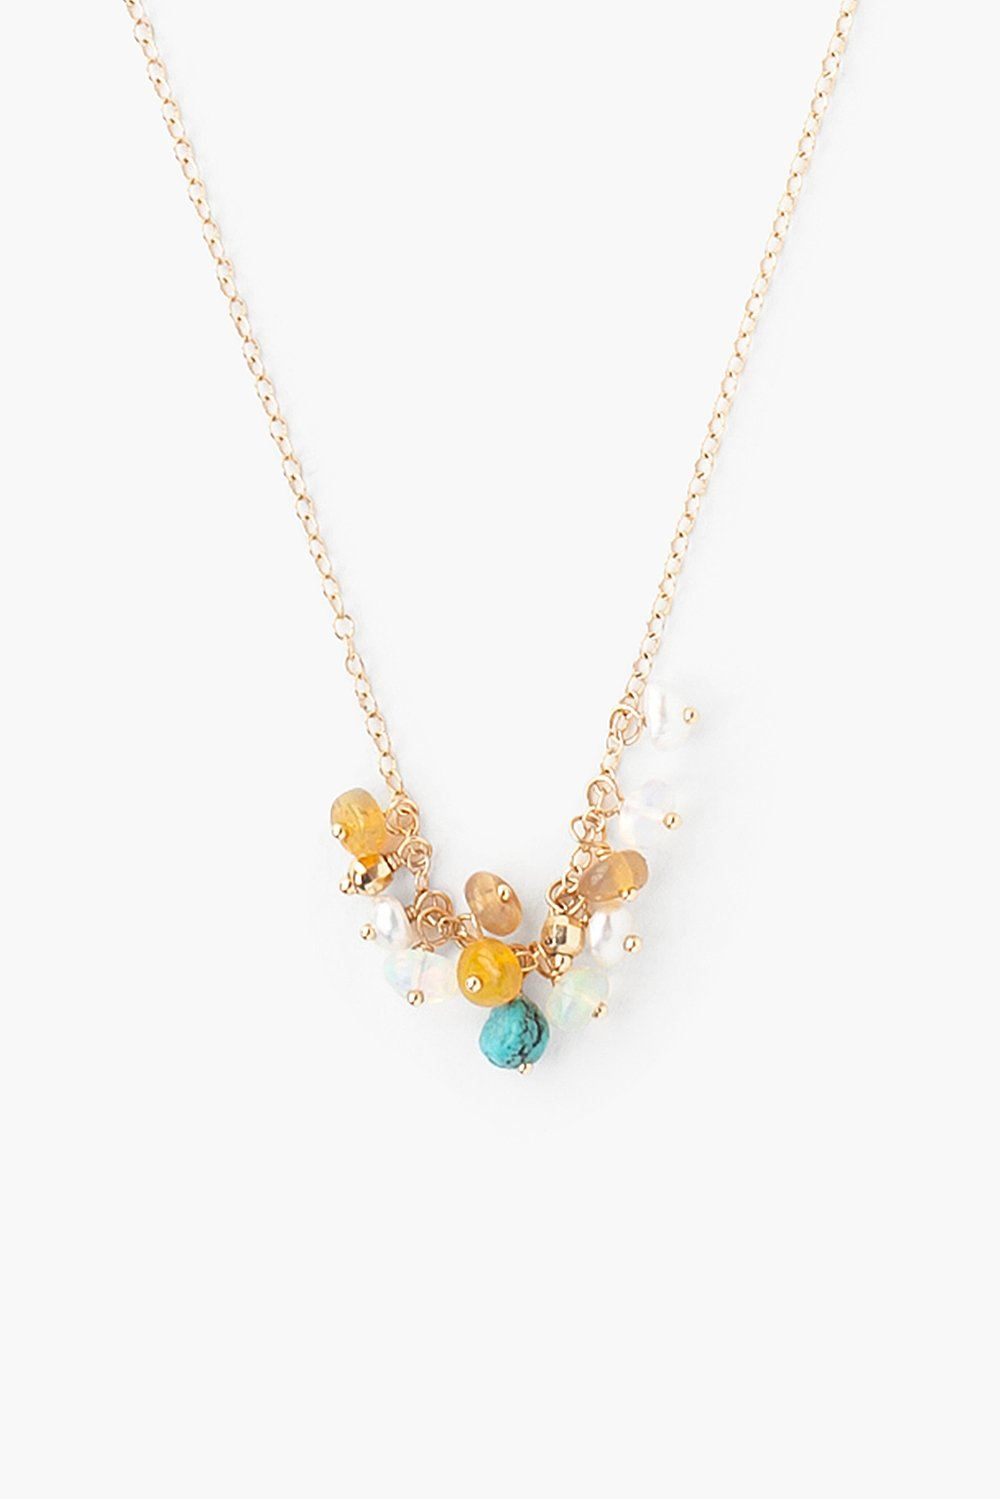 14k Opal and Turquoise Charm Necklace